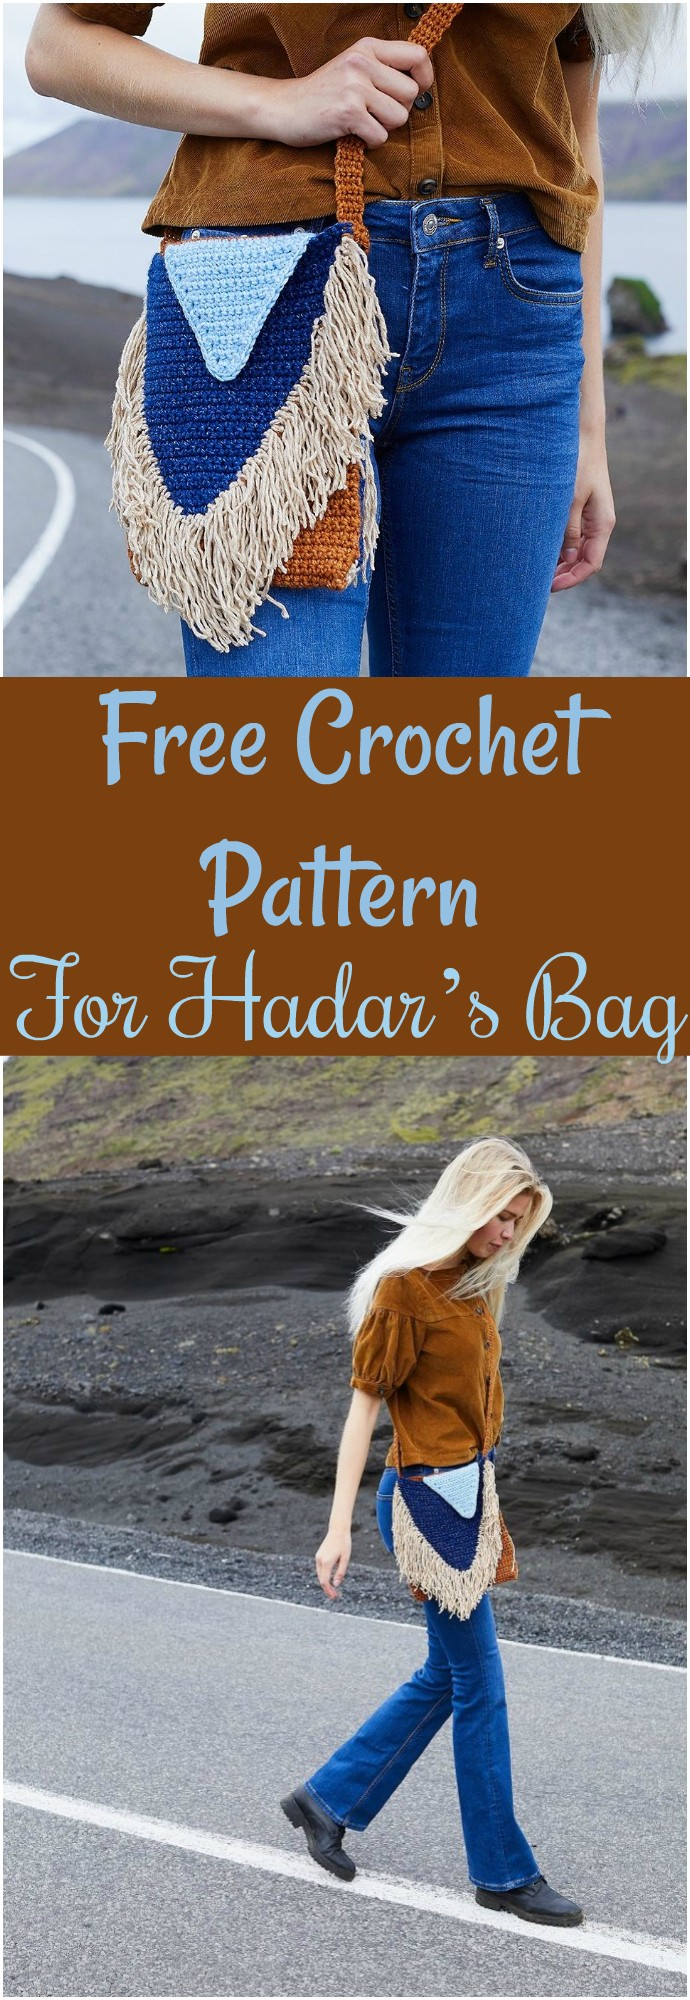 Free Crochet Pattern For Hadar's Bag